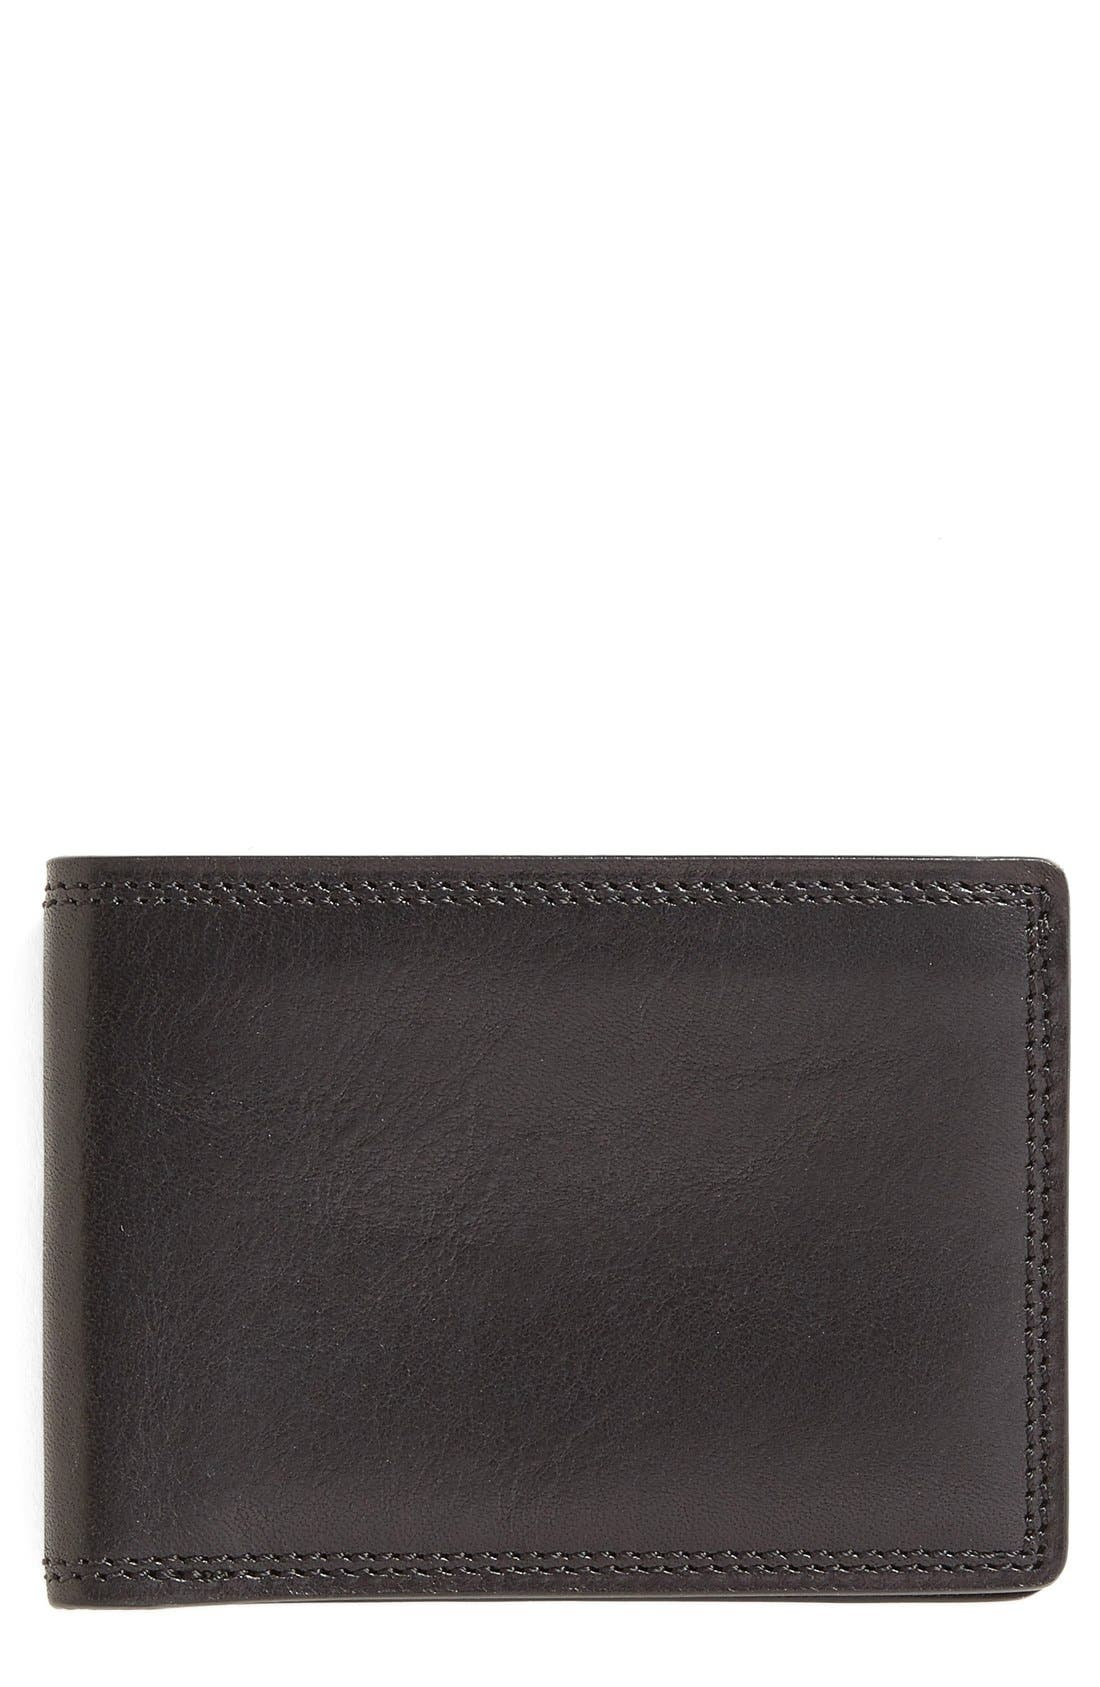 Main Image - Bosca Leather Bifold Wallet